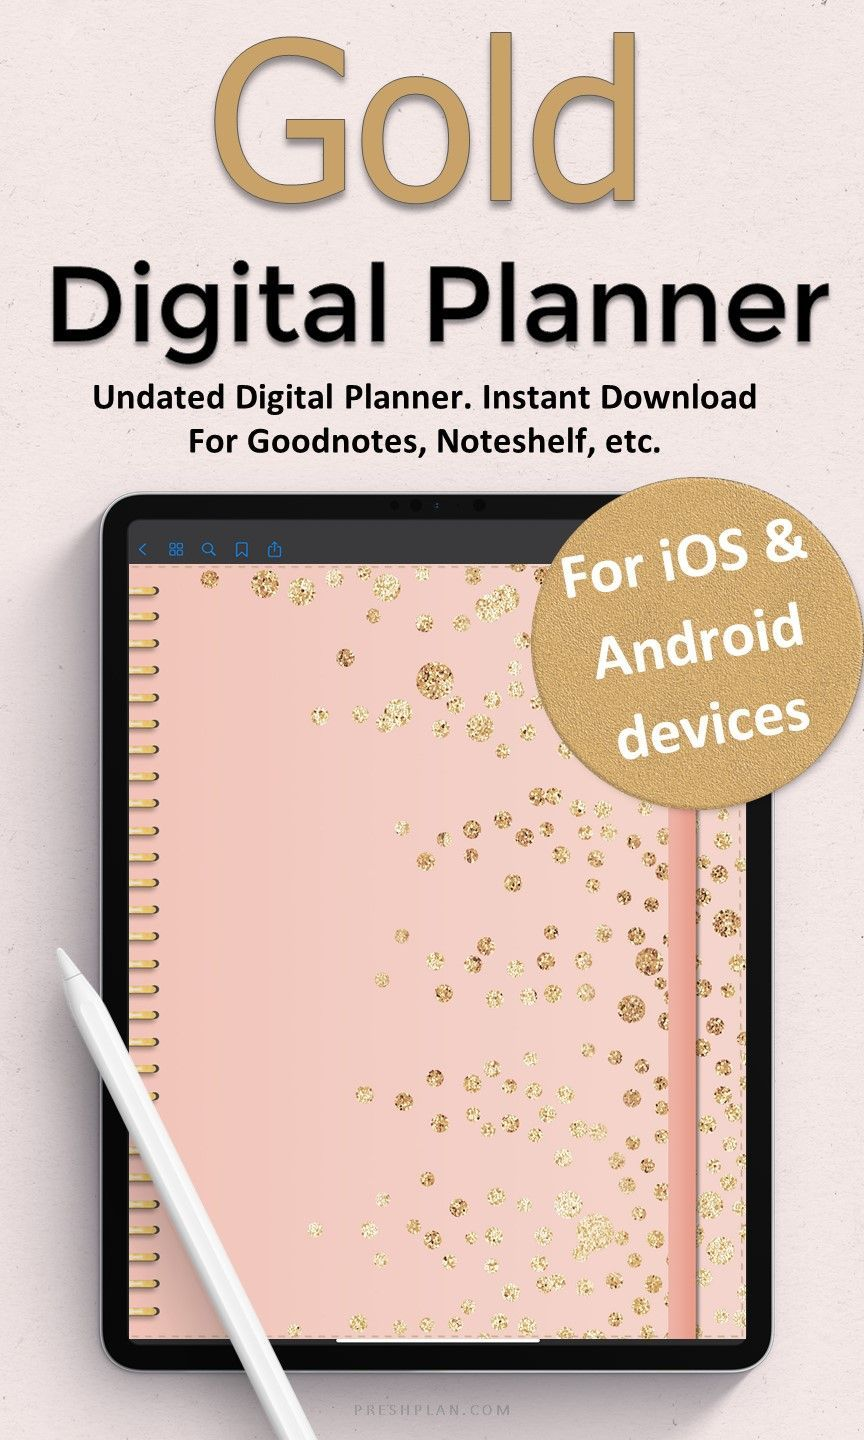 Gold Digital Planner Daily Planner Simple Digital Planning | Etsy